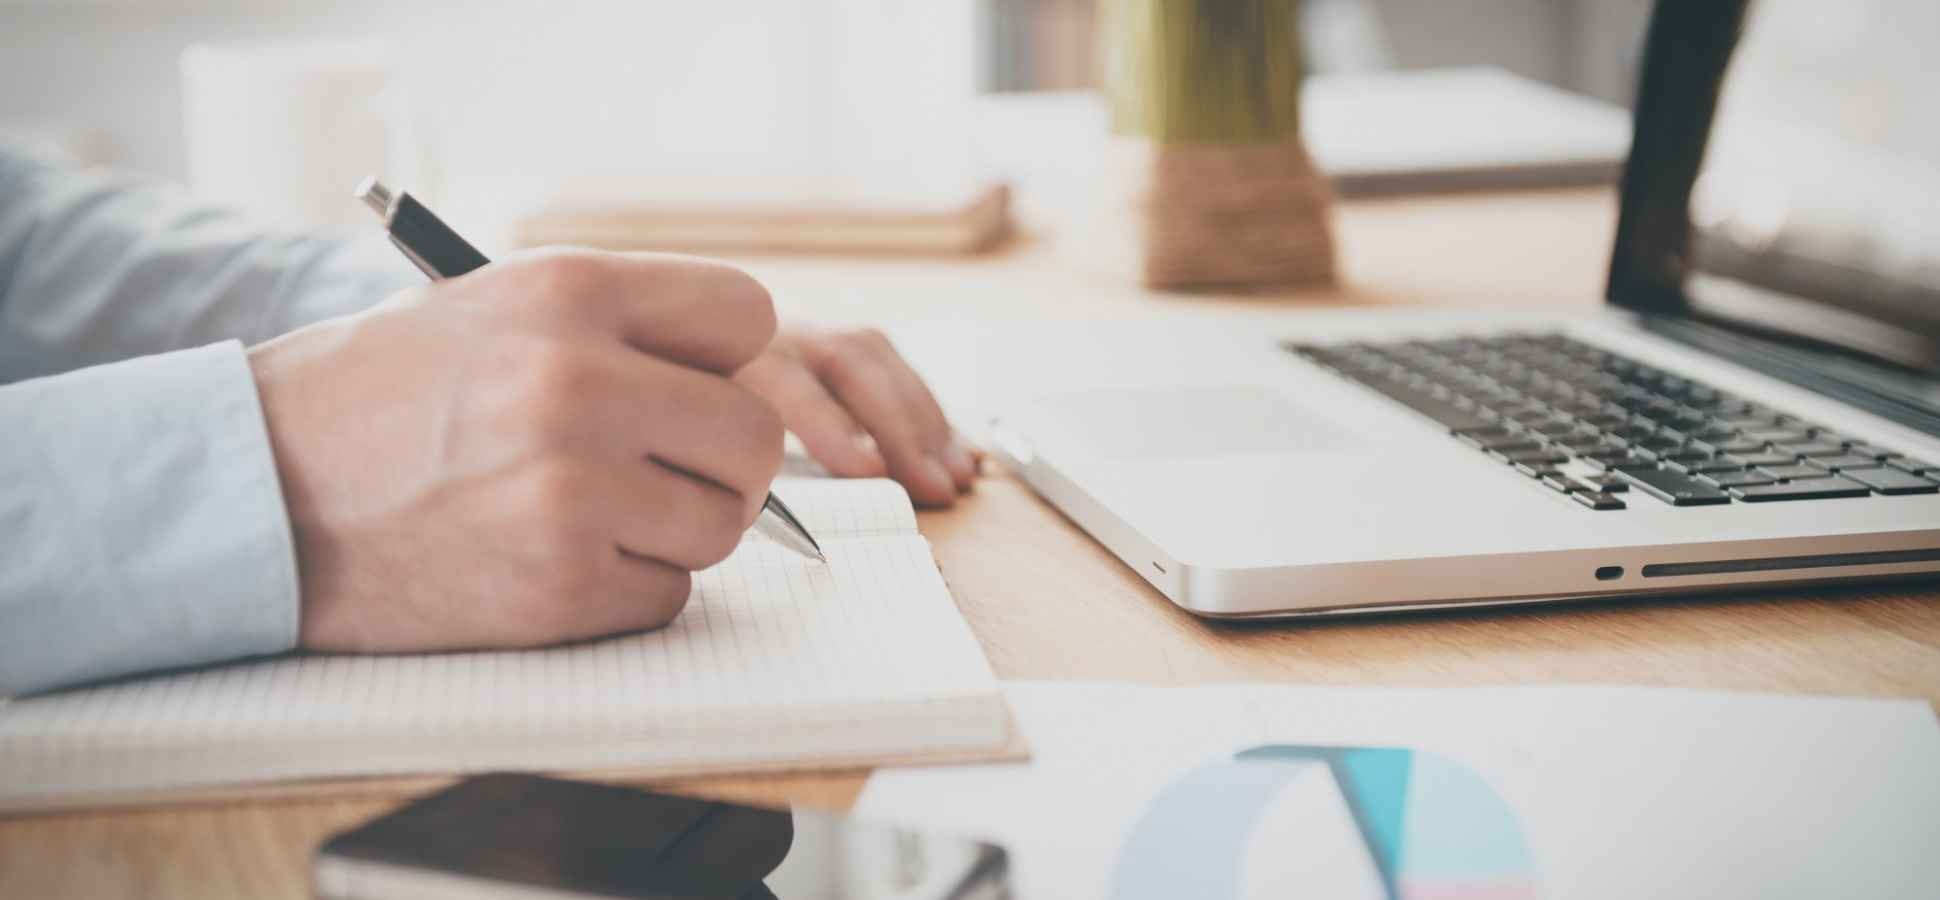 Science Says This Old-School Style of Note-Taking Will Supercharge Your Brain